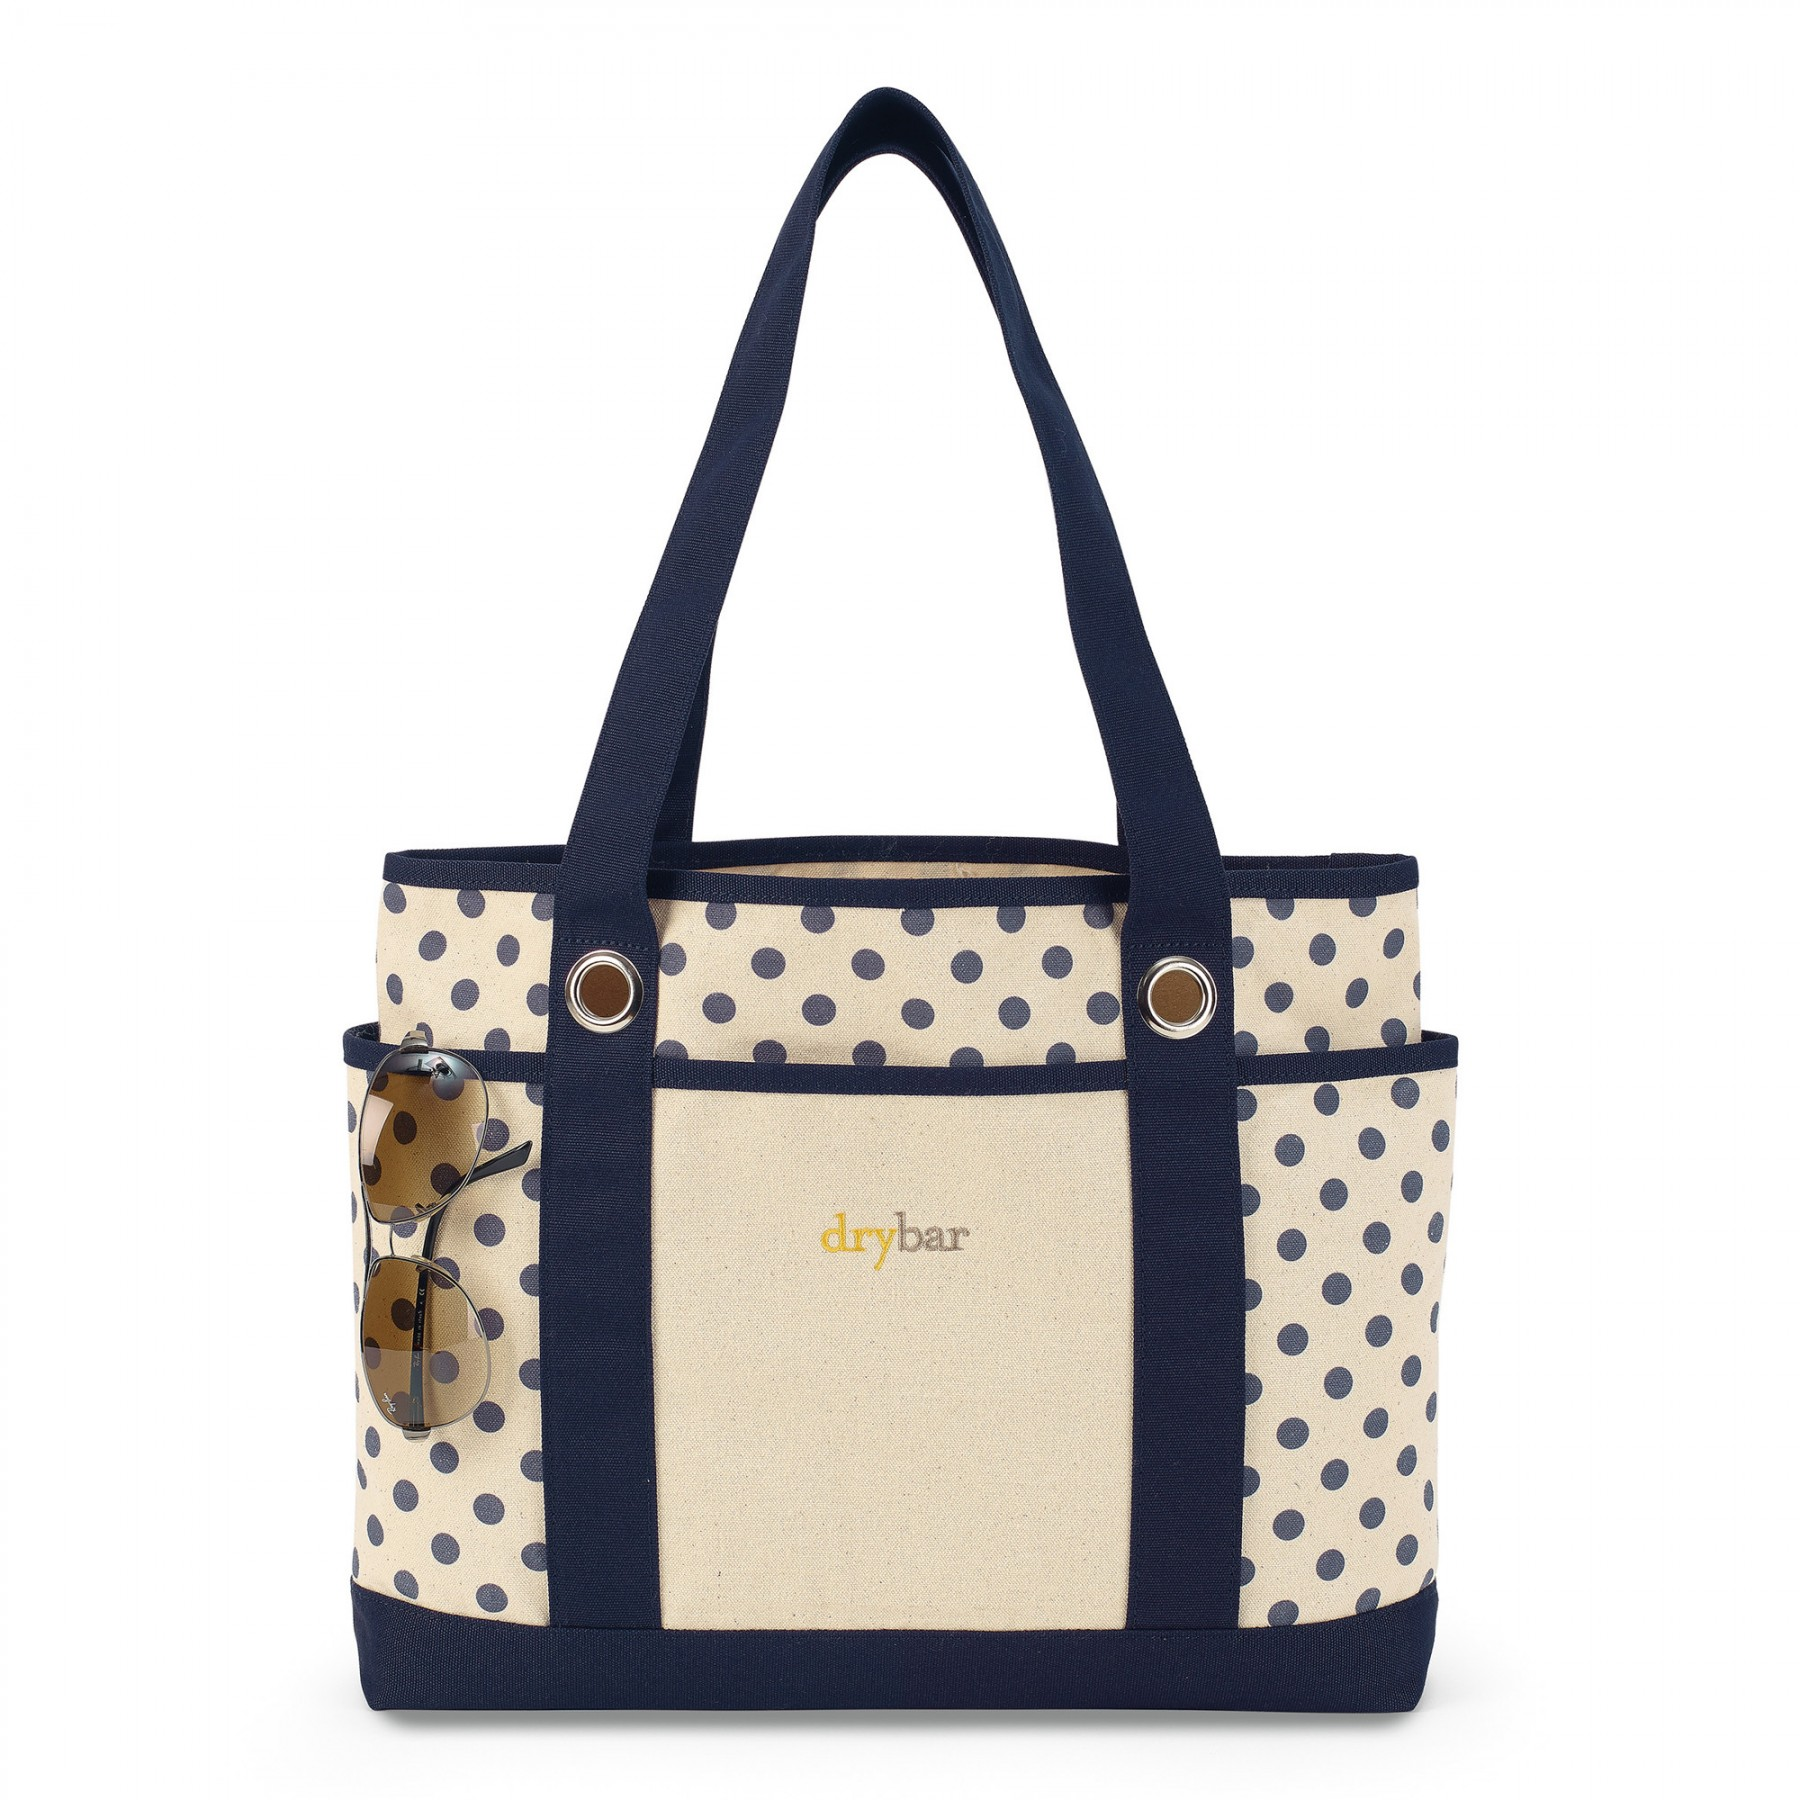 Audrey Fashion Tote